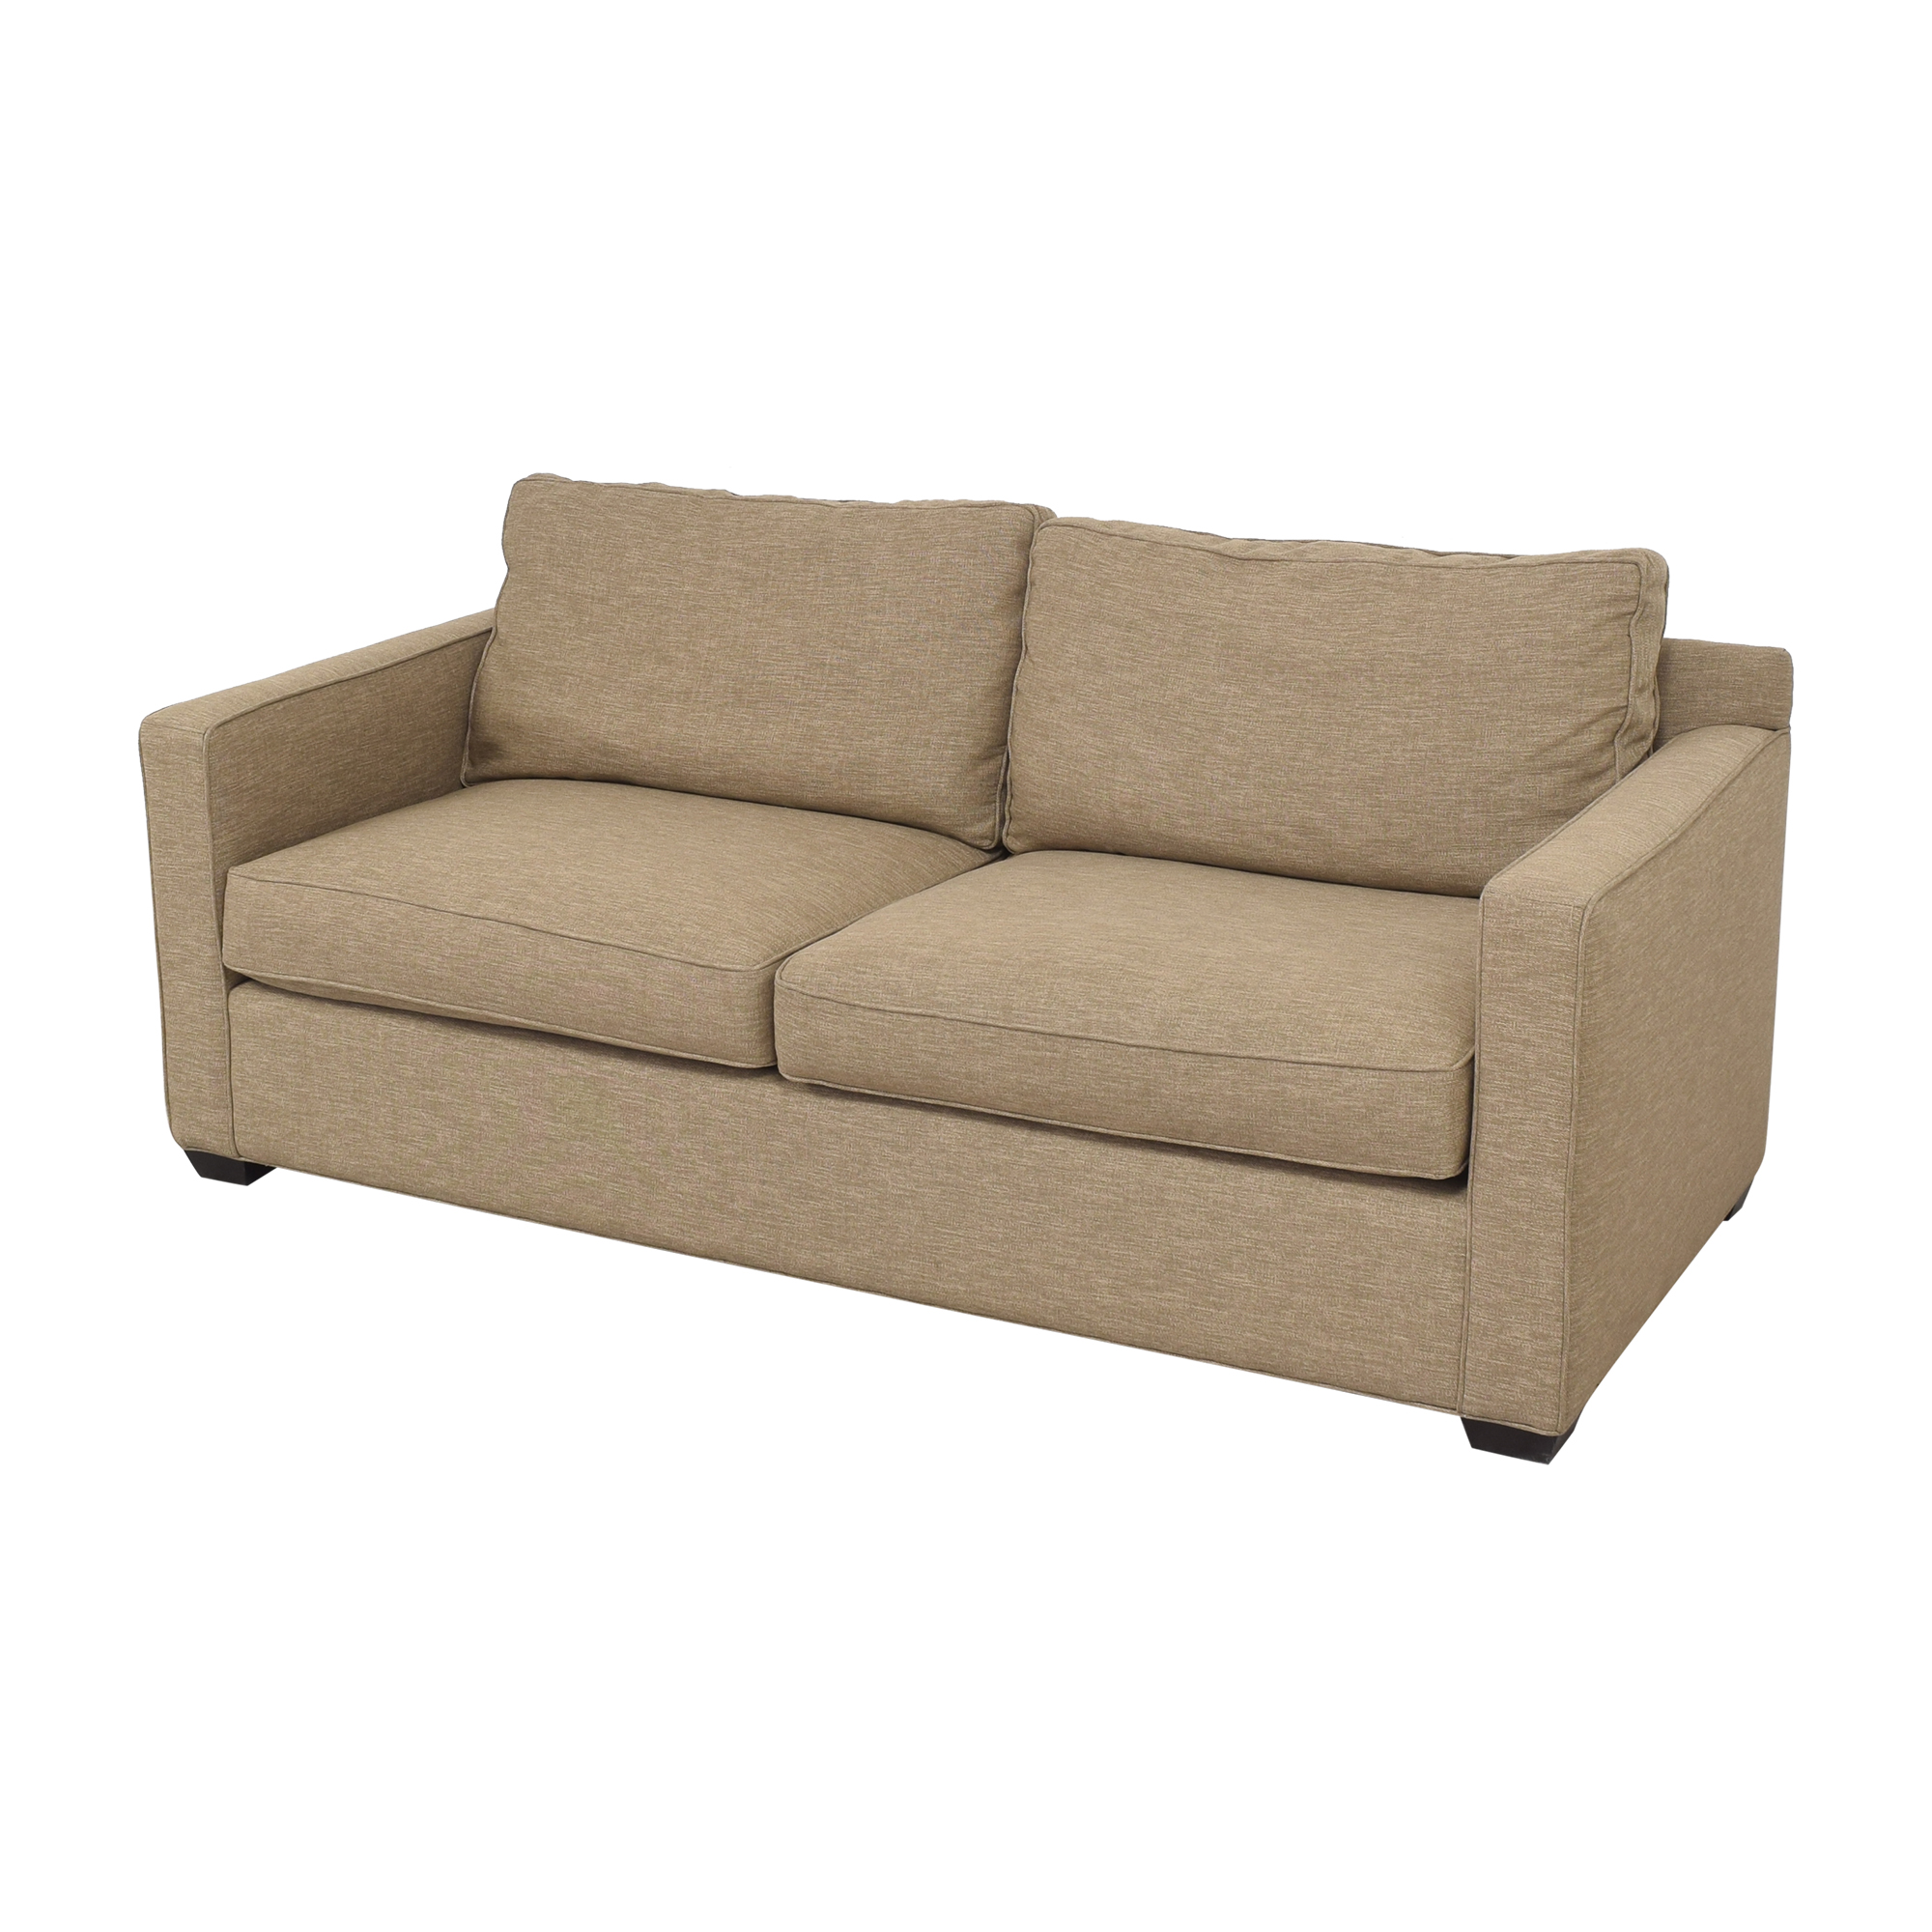 Crate & Barrel Davis Track Arm Sofa / Classic Sofas